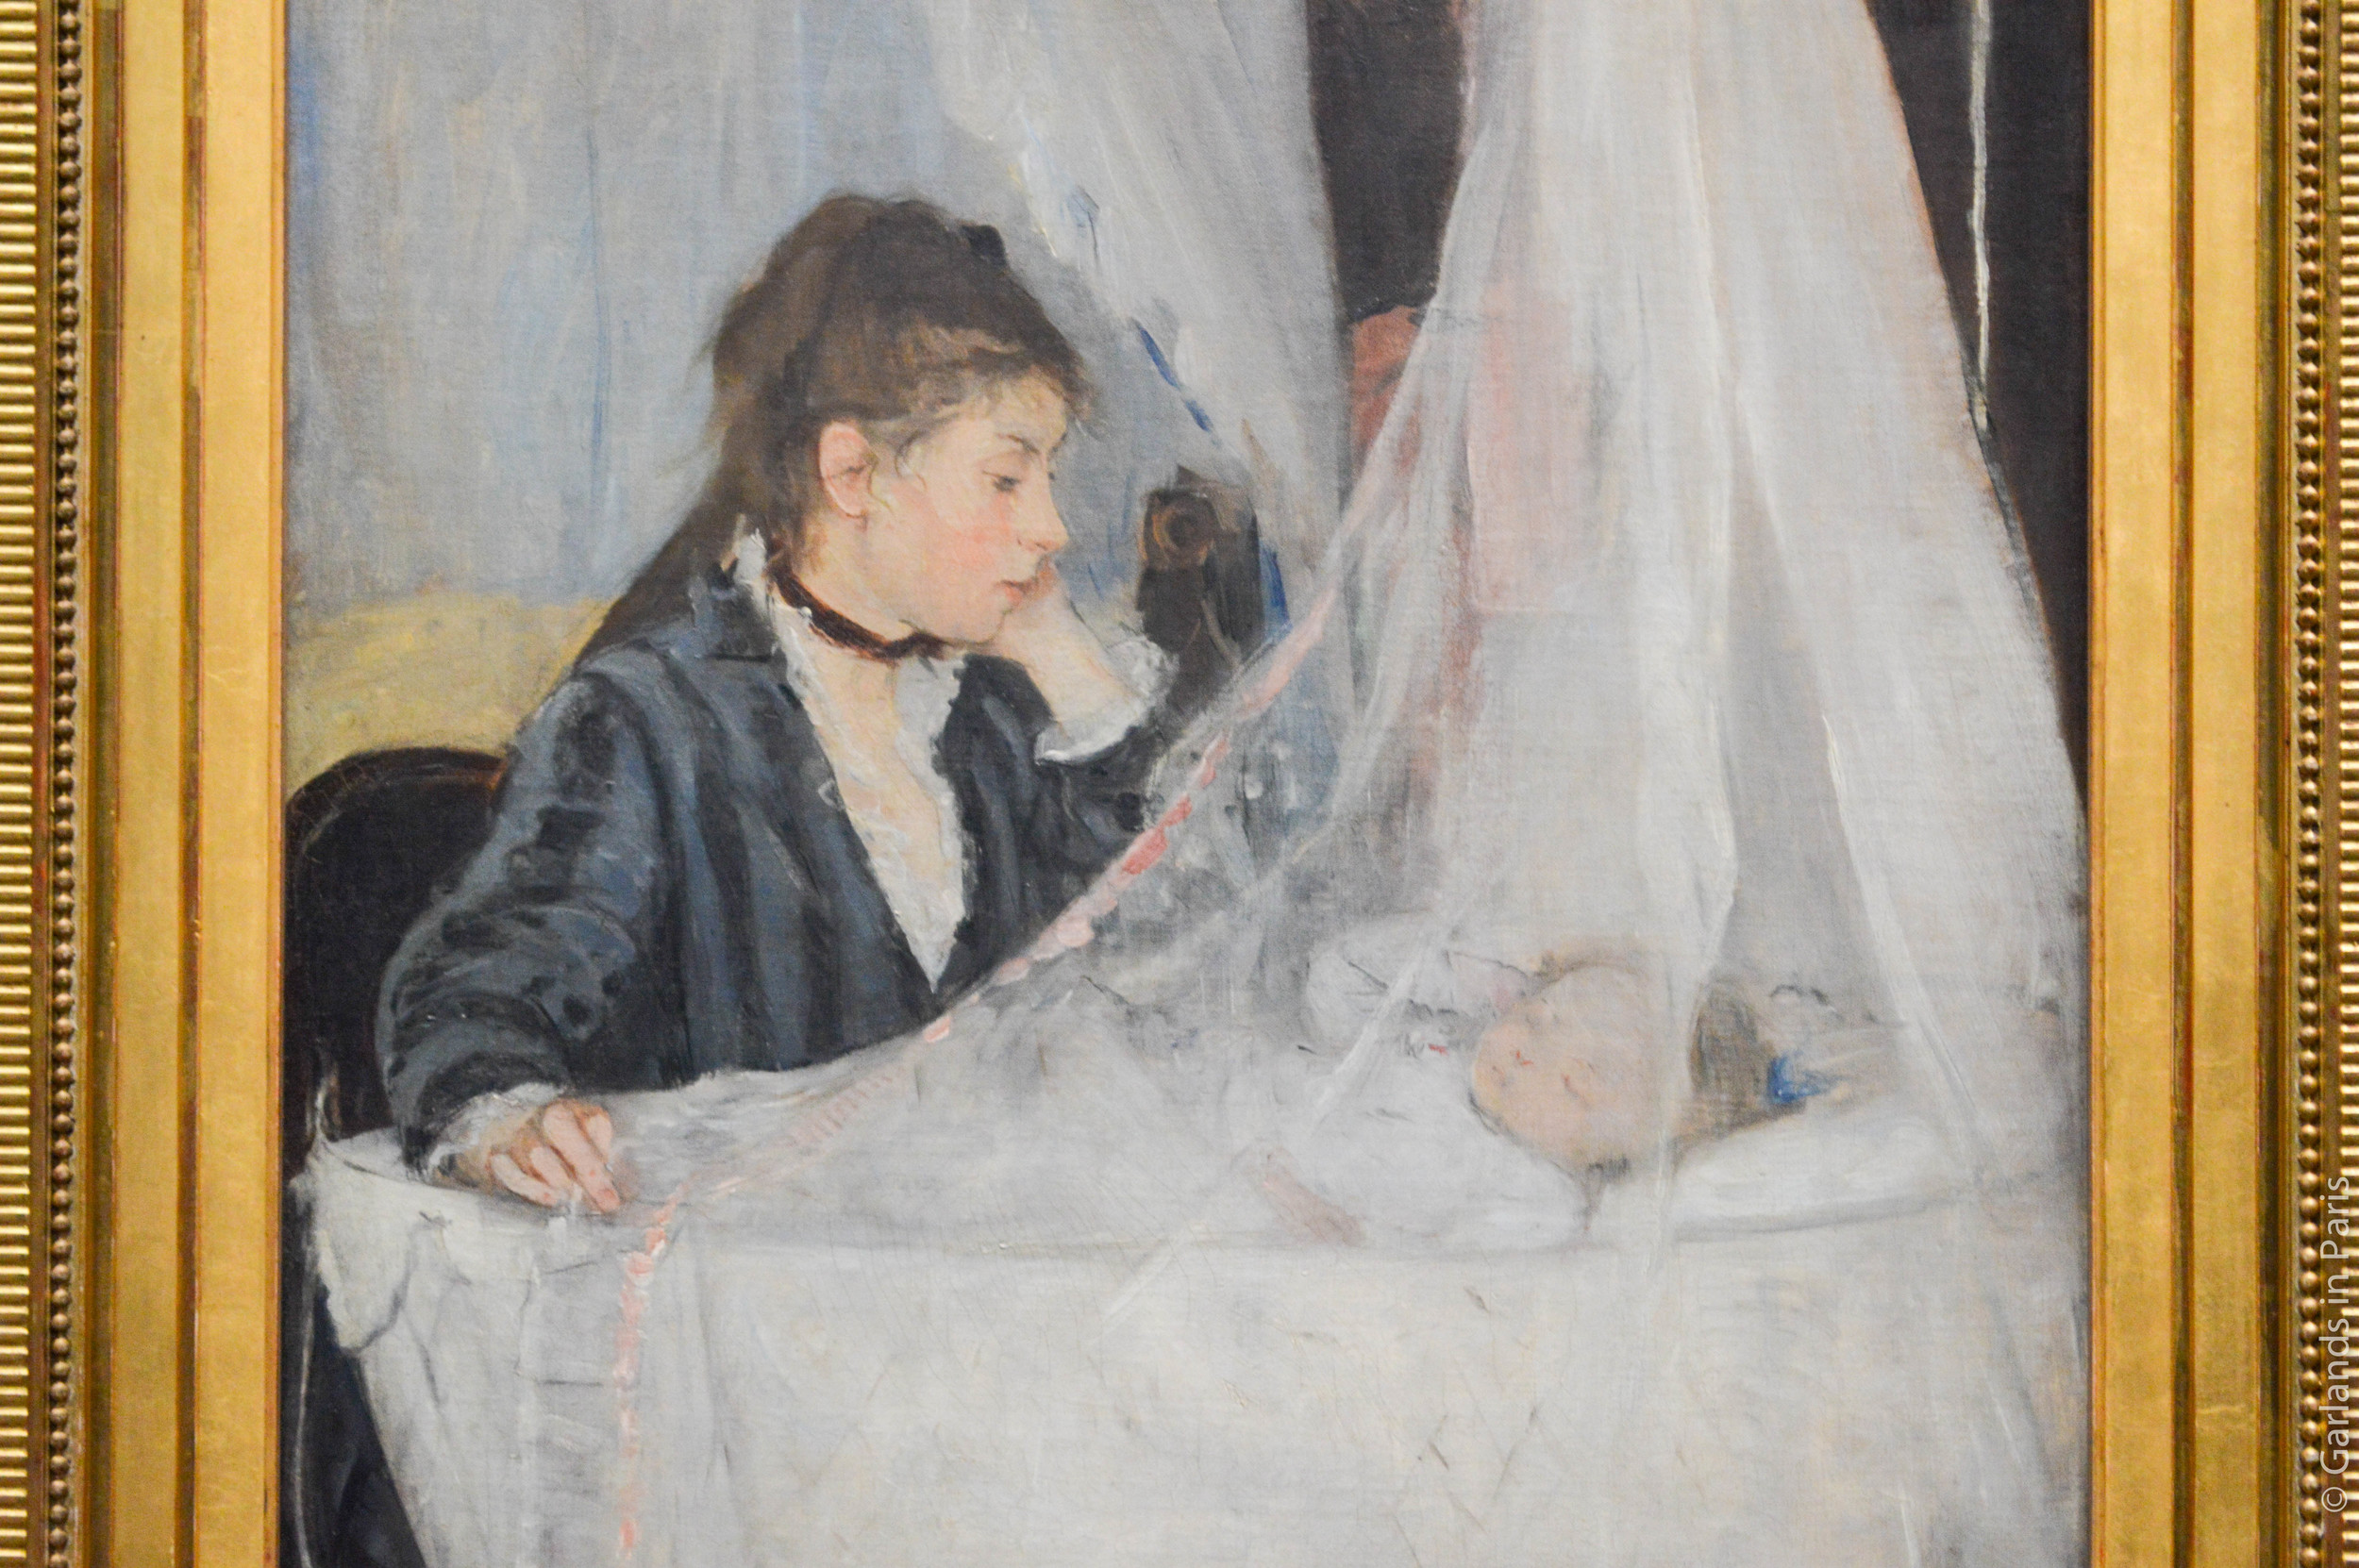 Mother, Musée d'Orsay, Paris